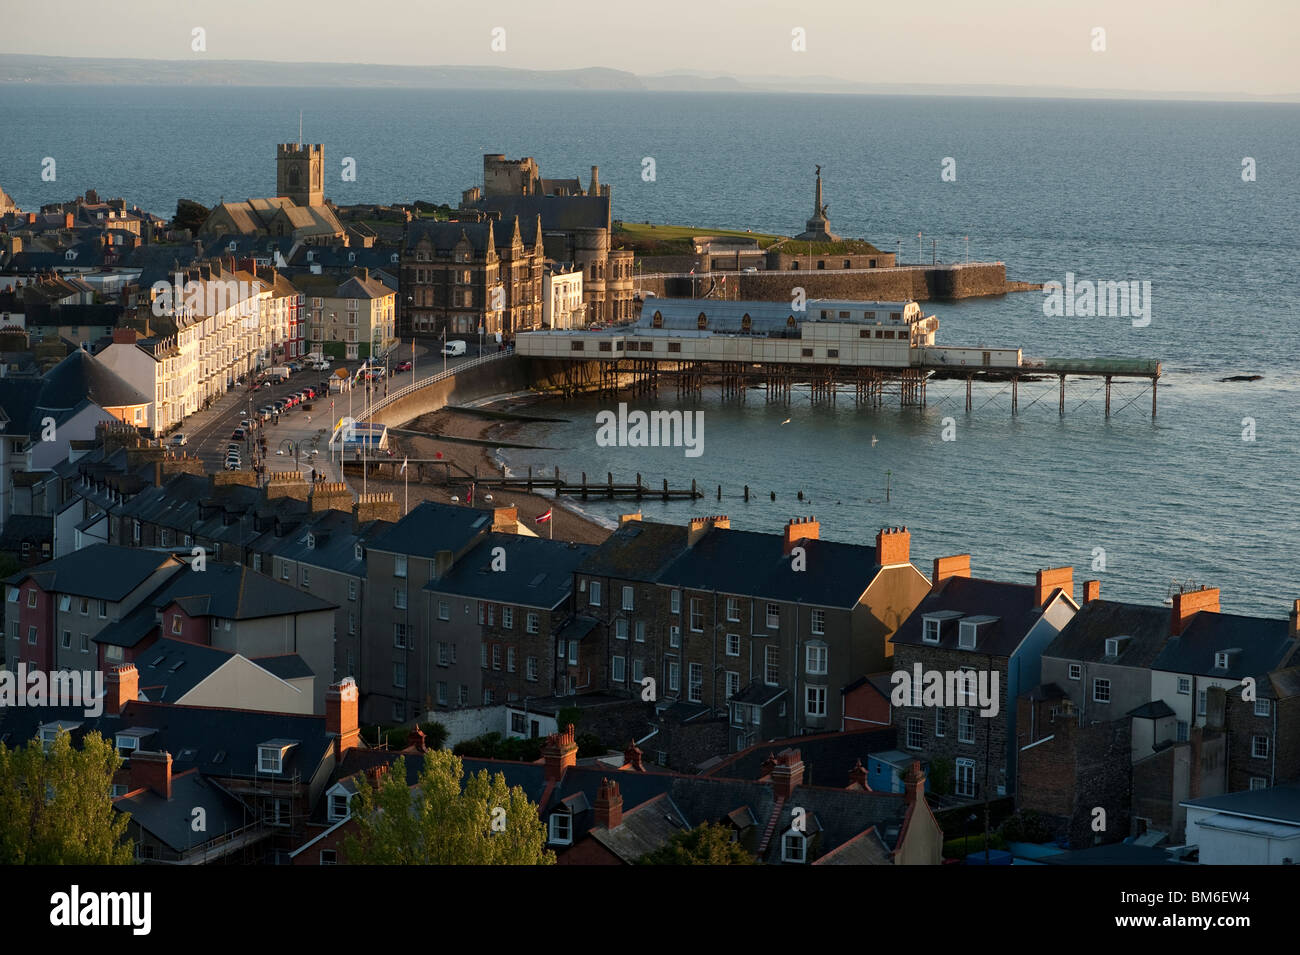 General view of Aberystwyth town, a seaside resort on the west coast of Wales UK - Stock Image